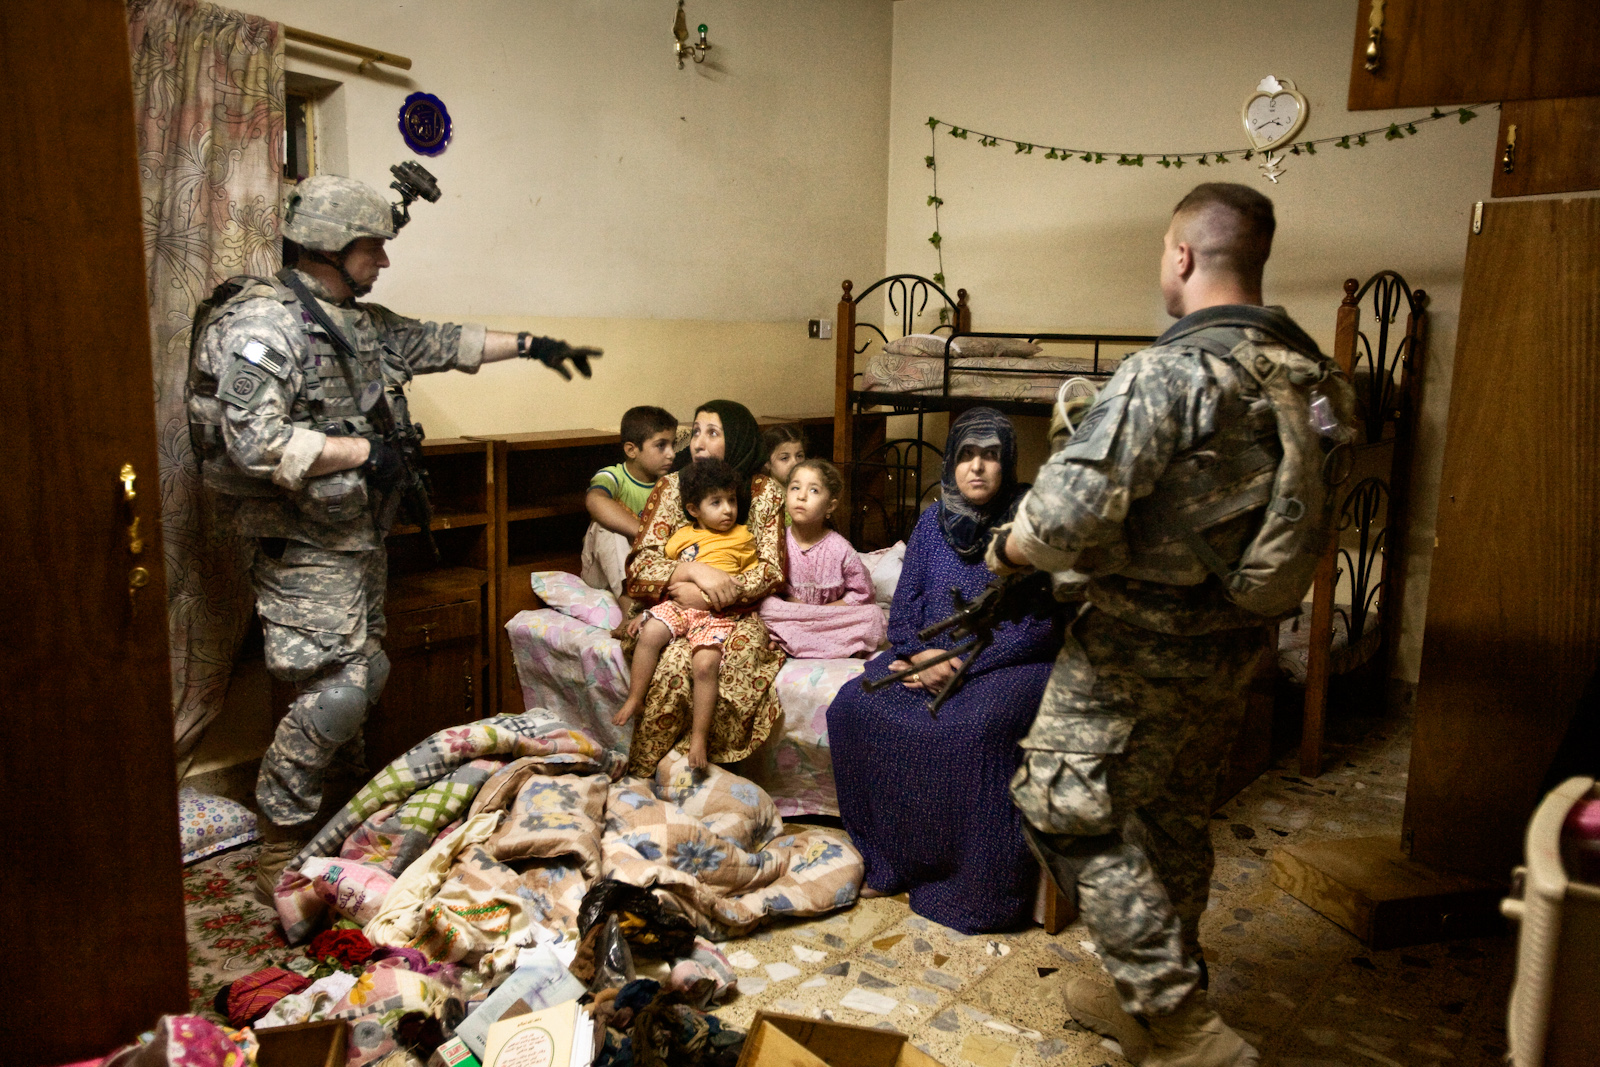 U.S. soldiers raid a home where they arrested two al Qaeda supporters in Samarra, Iraq, Sept, 28, 2007. This is the last mission for the 'Smash Platoon' before returning to the U.S.